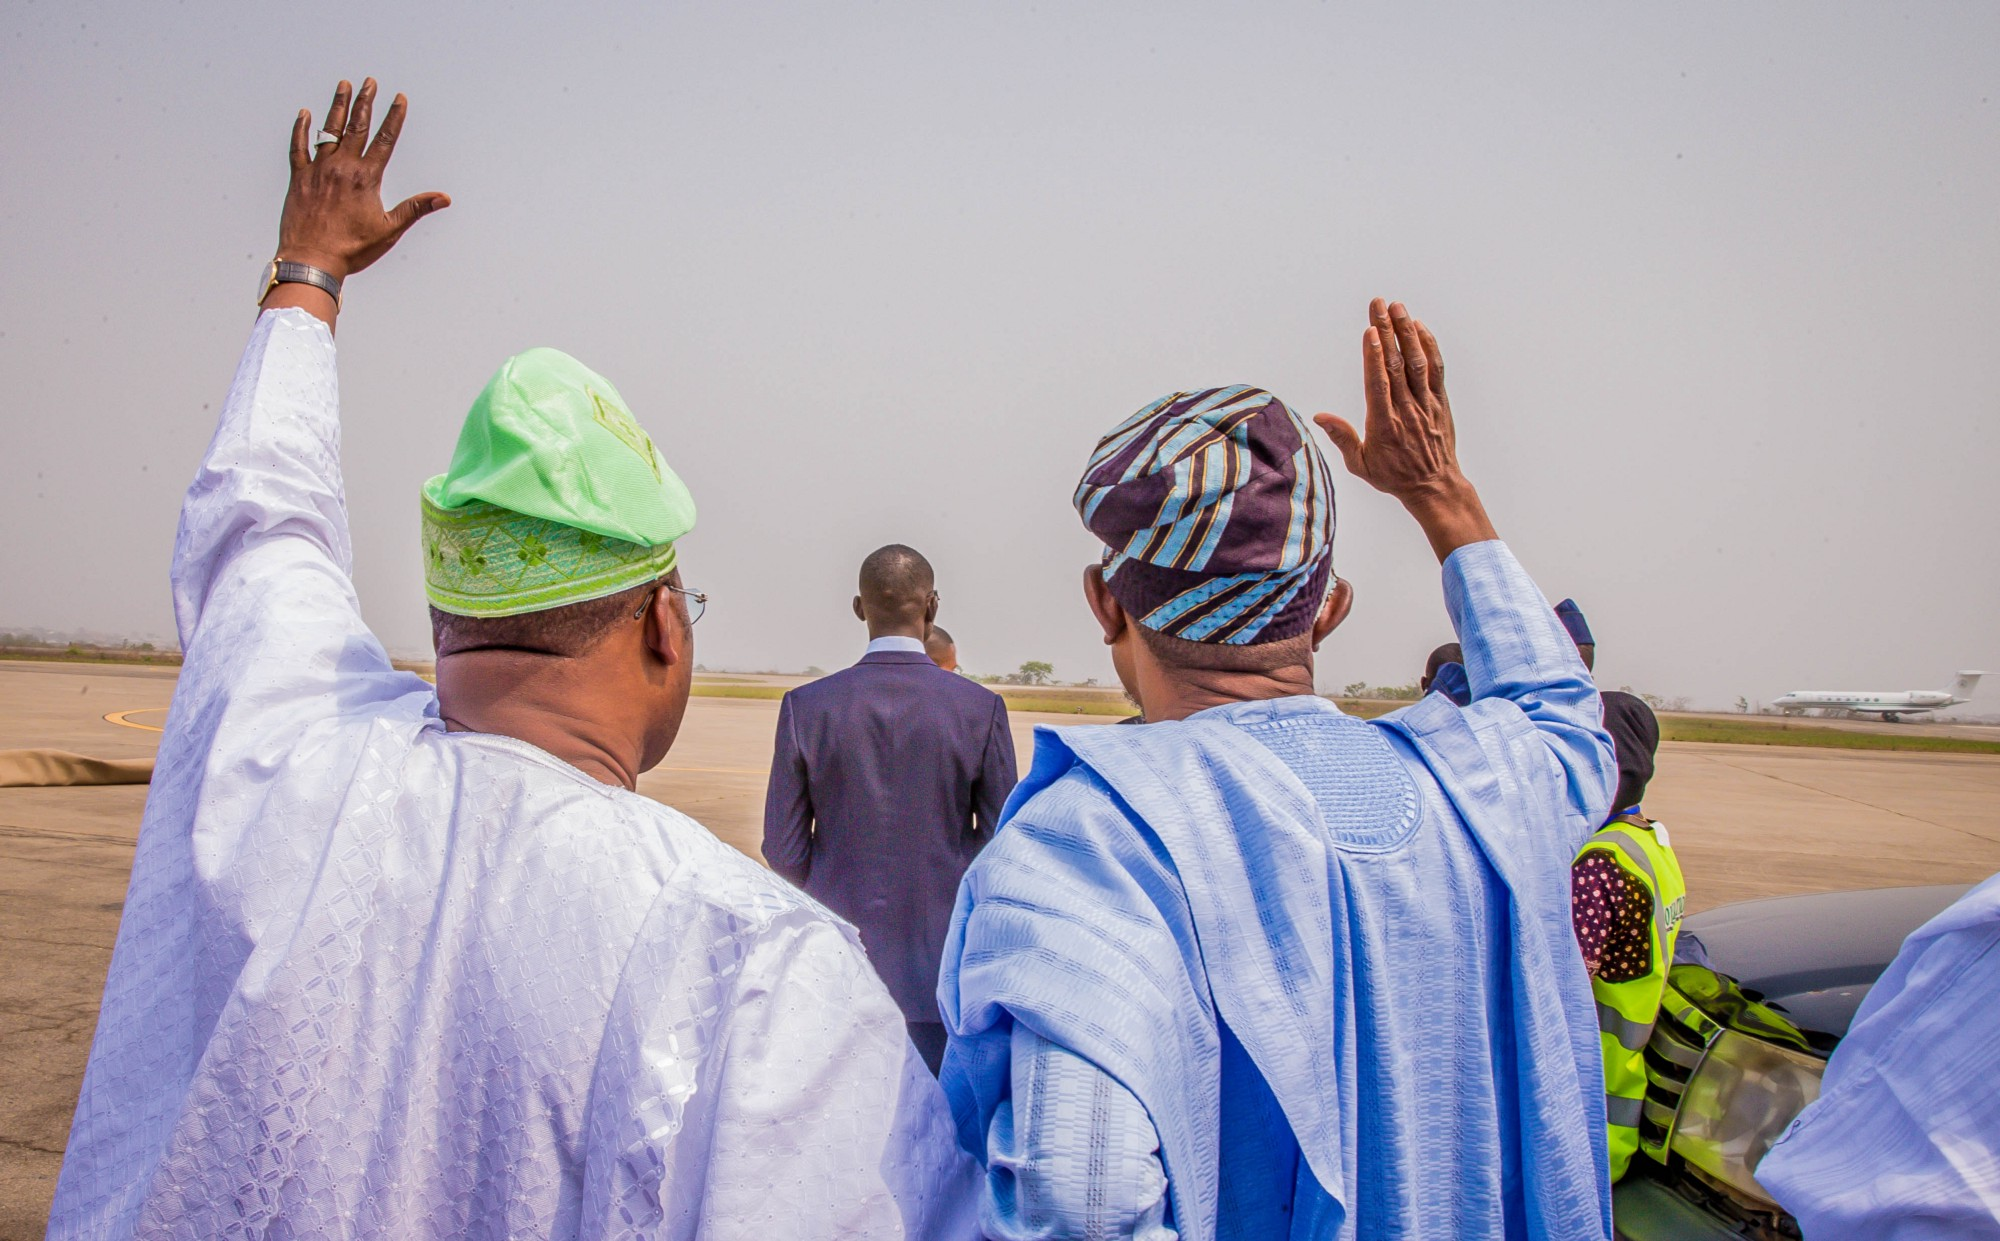 Governor Ajimobi and Governor Aregbesola wave good-bye as Vice- President Yemi Osinbajo's plane takes off from Ibadan. (Photo by: Tolani Alli)